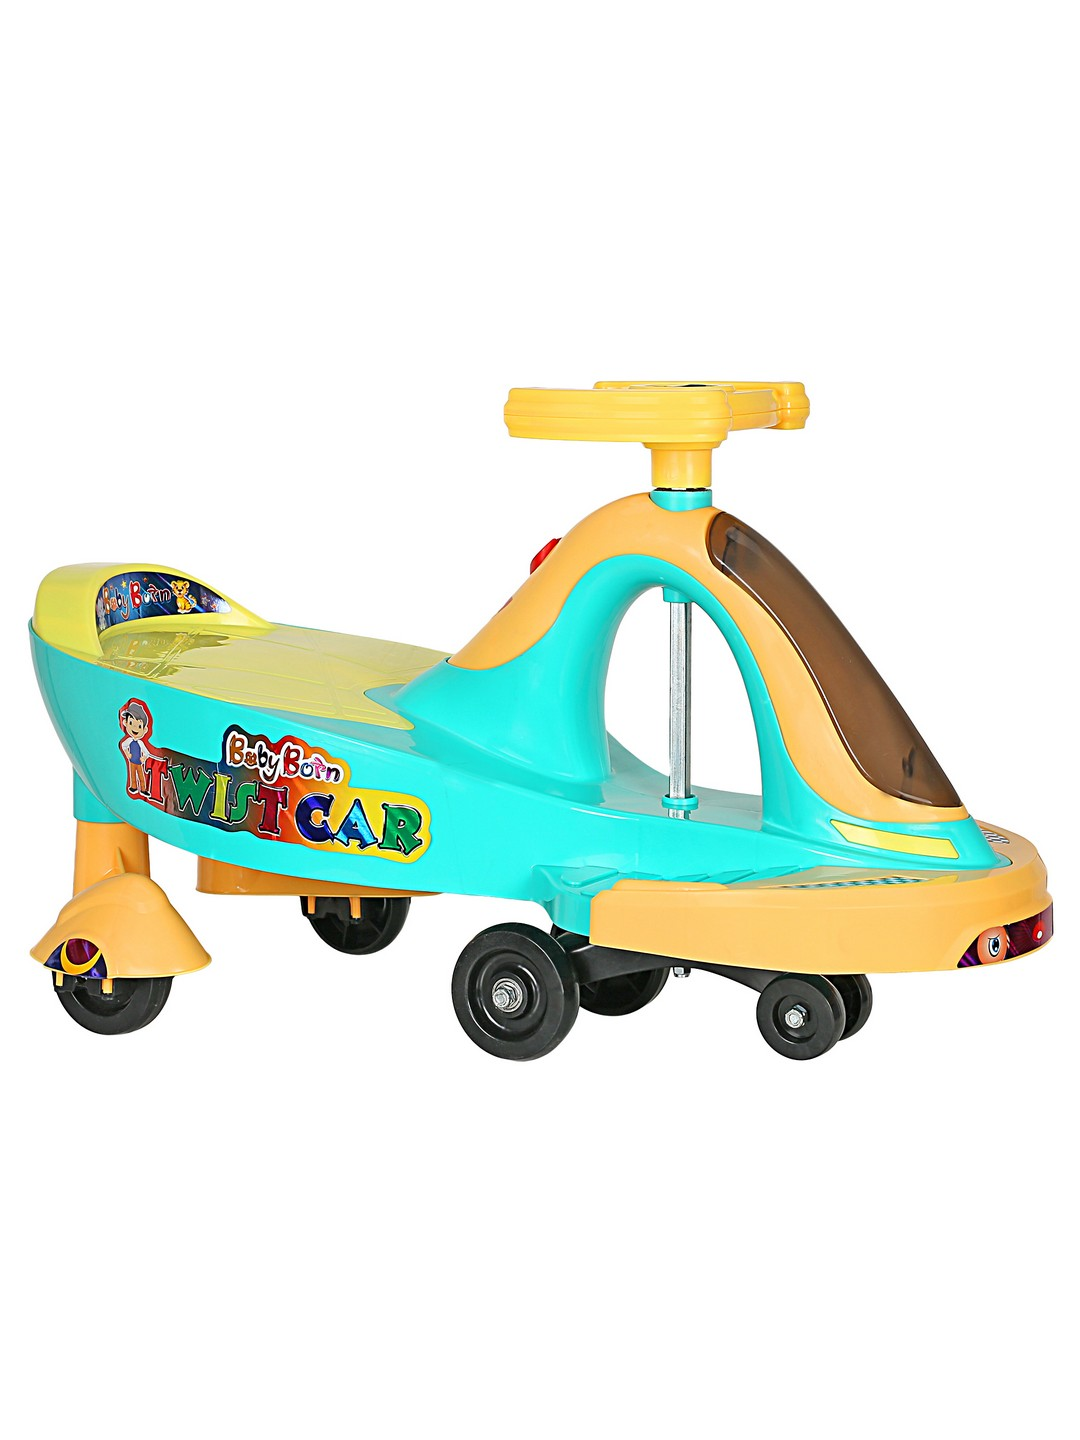 CREATURE | Creature Blue Twist Ride Ride-On Cars Toy Vehicle for Kids